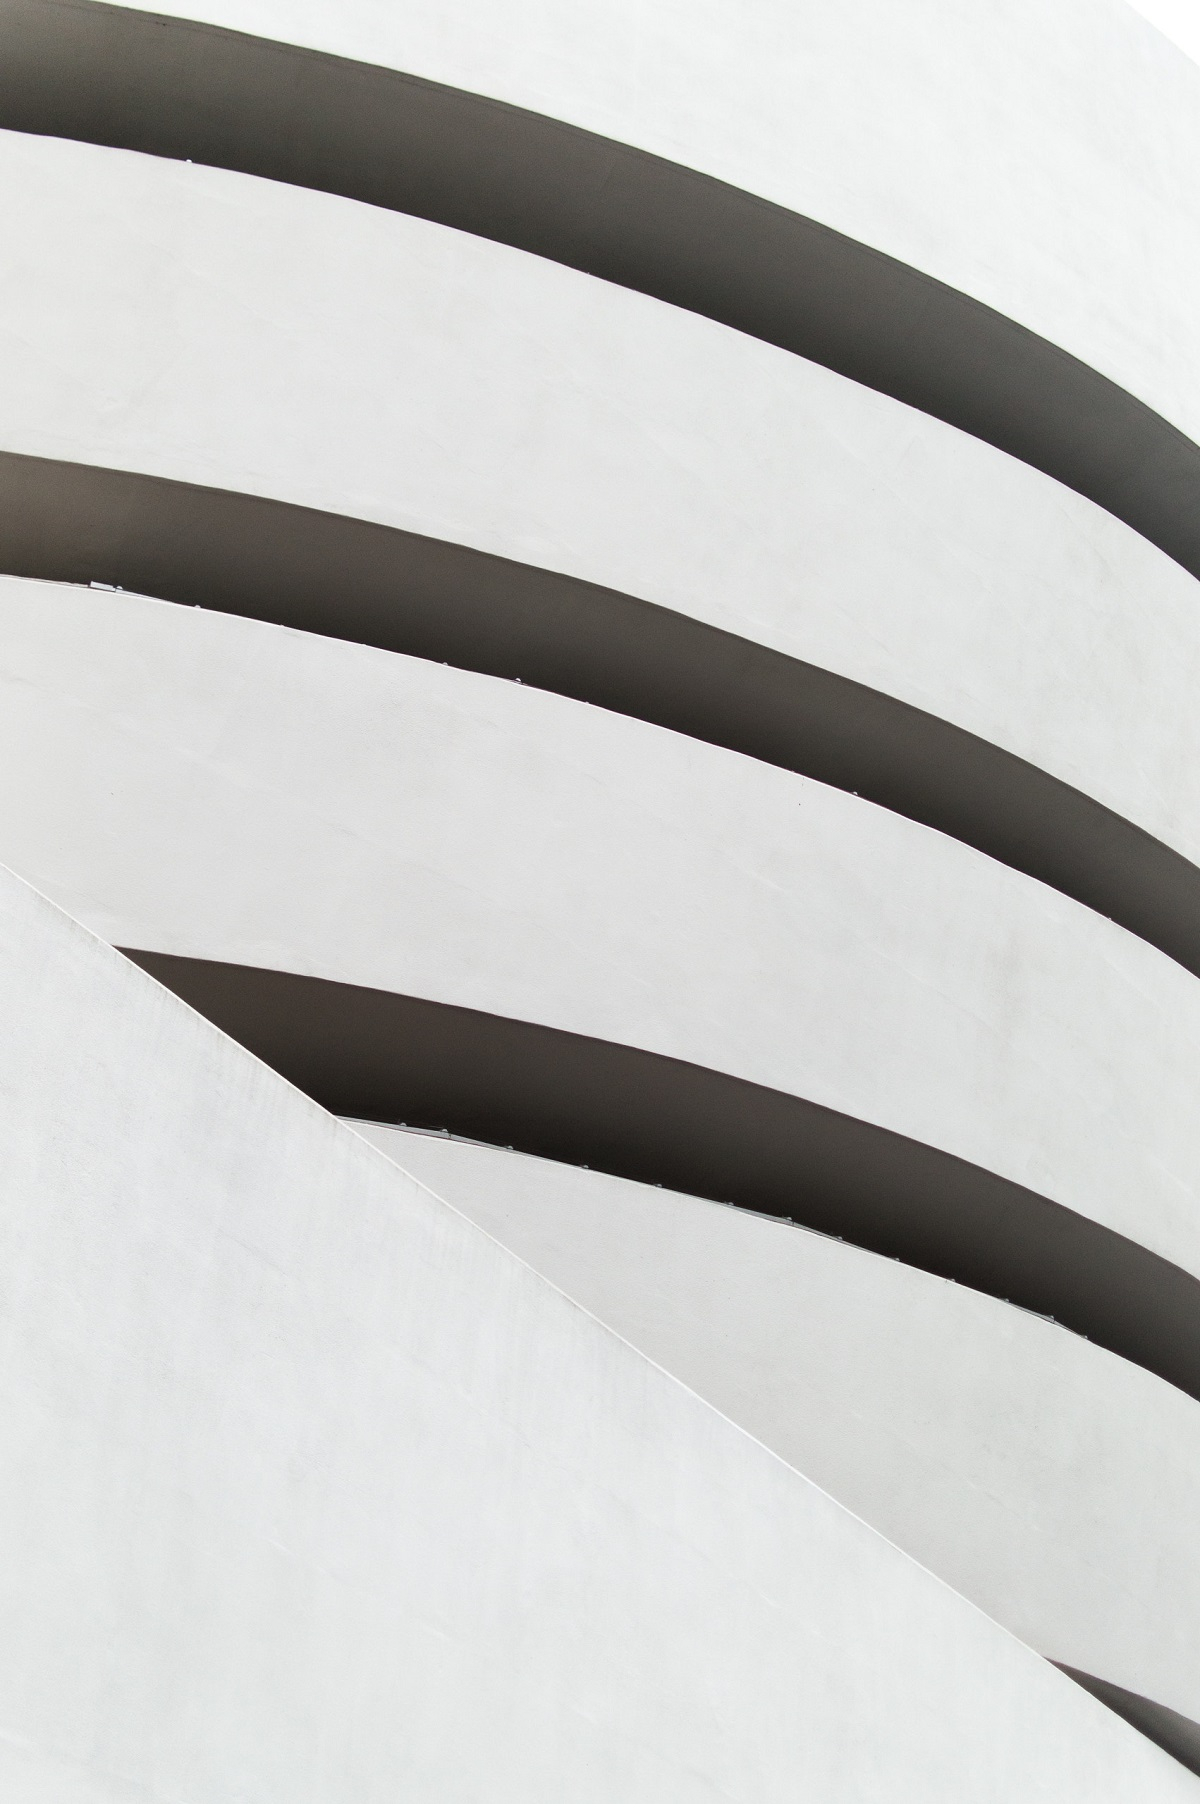 The Guggenheim, New York. Image credit: Charlotte Butcher